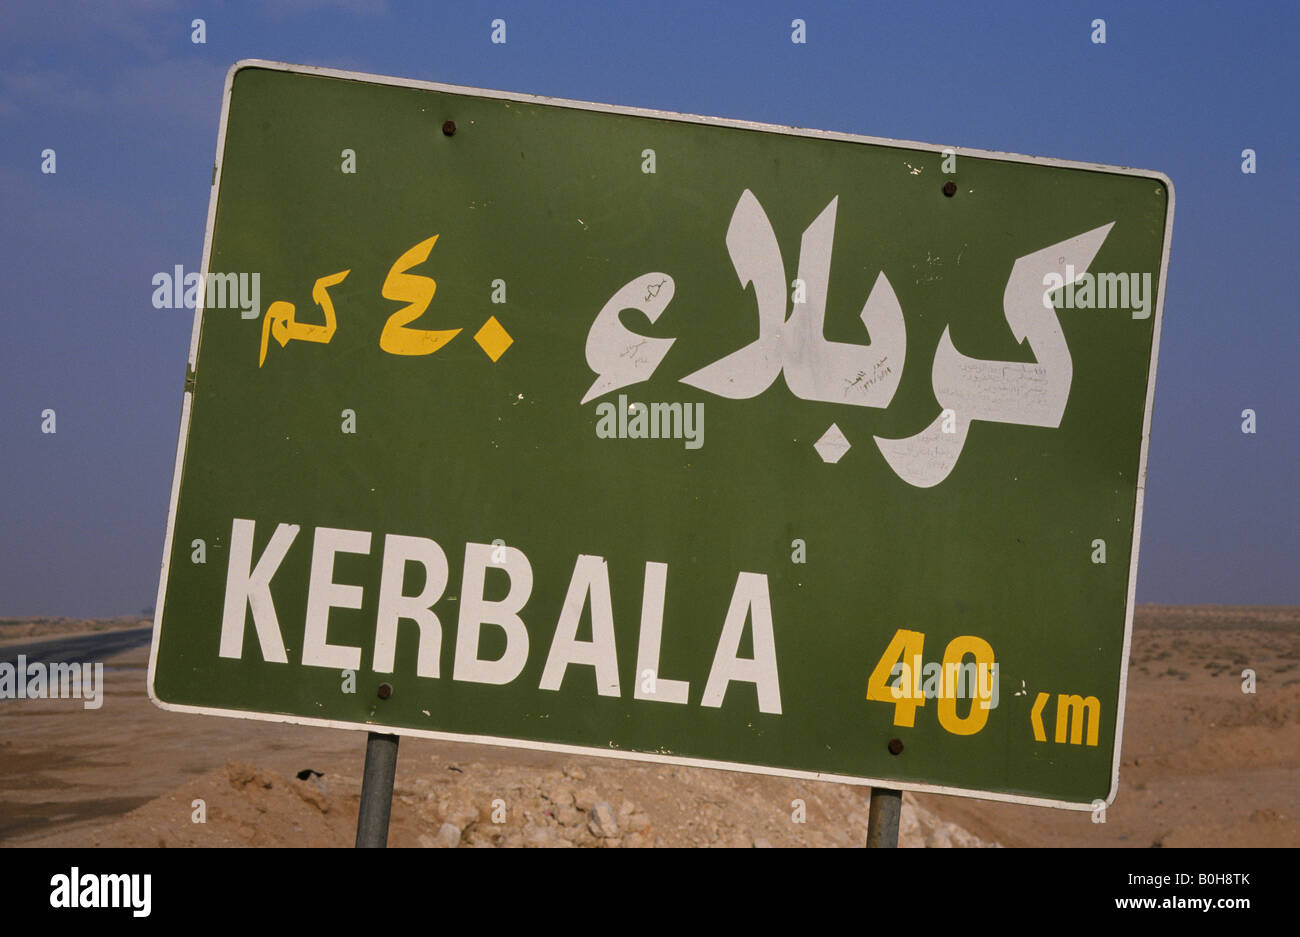 Road sign, 'Kerbala 40 km' near Baghdad, Iraq, Middle East - Stock Image